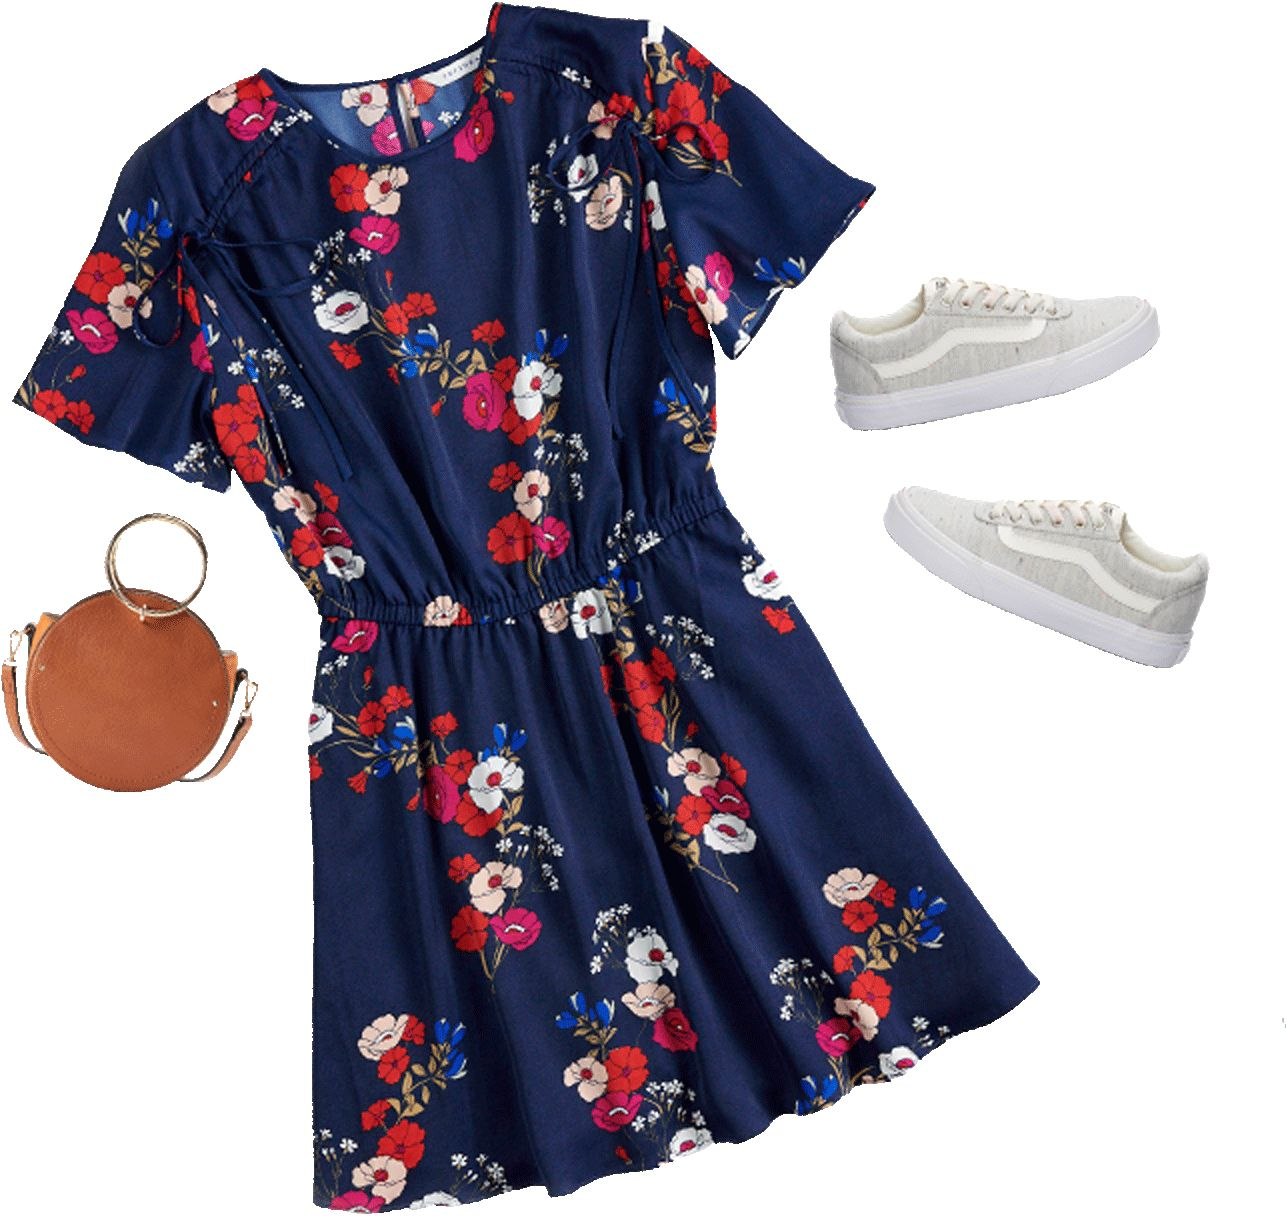 A canteen-shaped clutch purse, some fresh white Vans, a floral-patterned dress